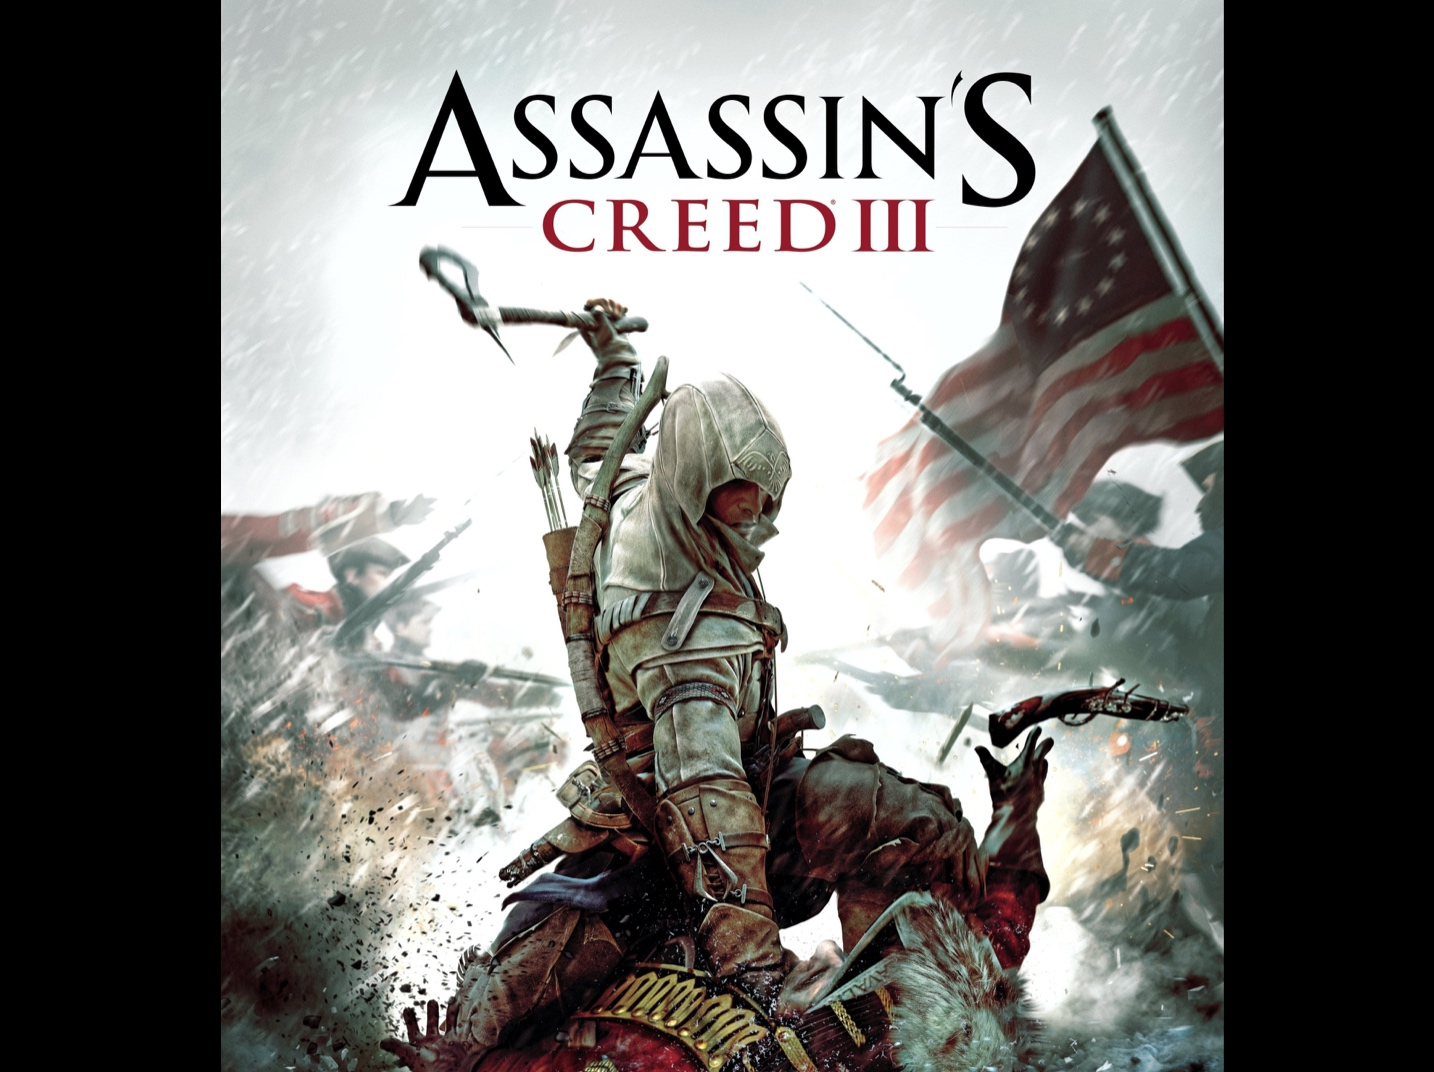 AssassinsCreed-III_Cover_Pic.jpg